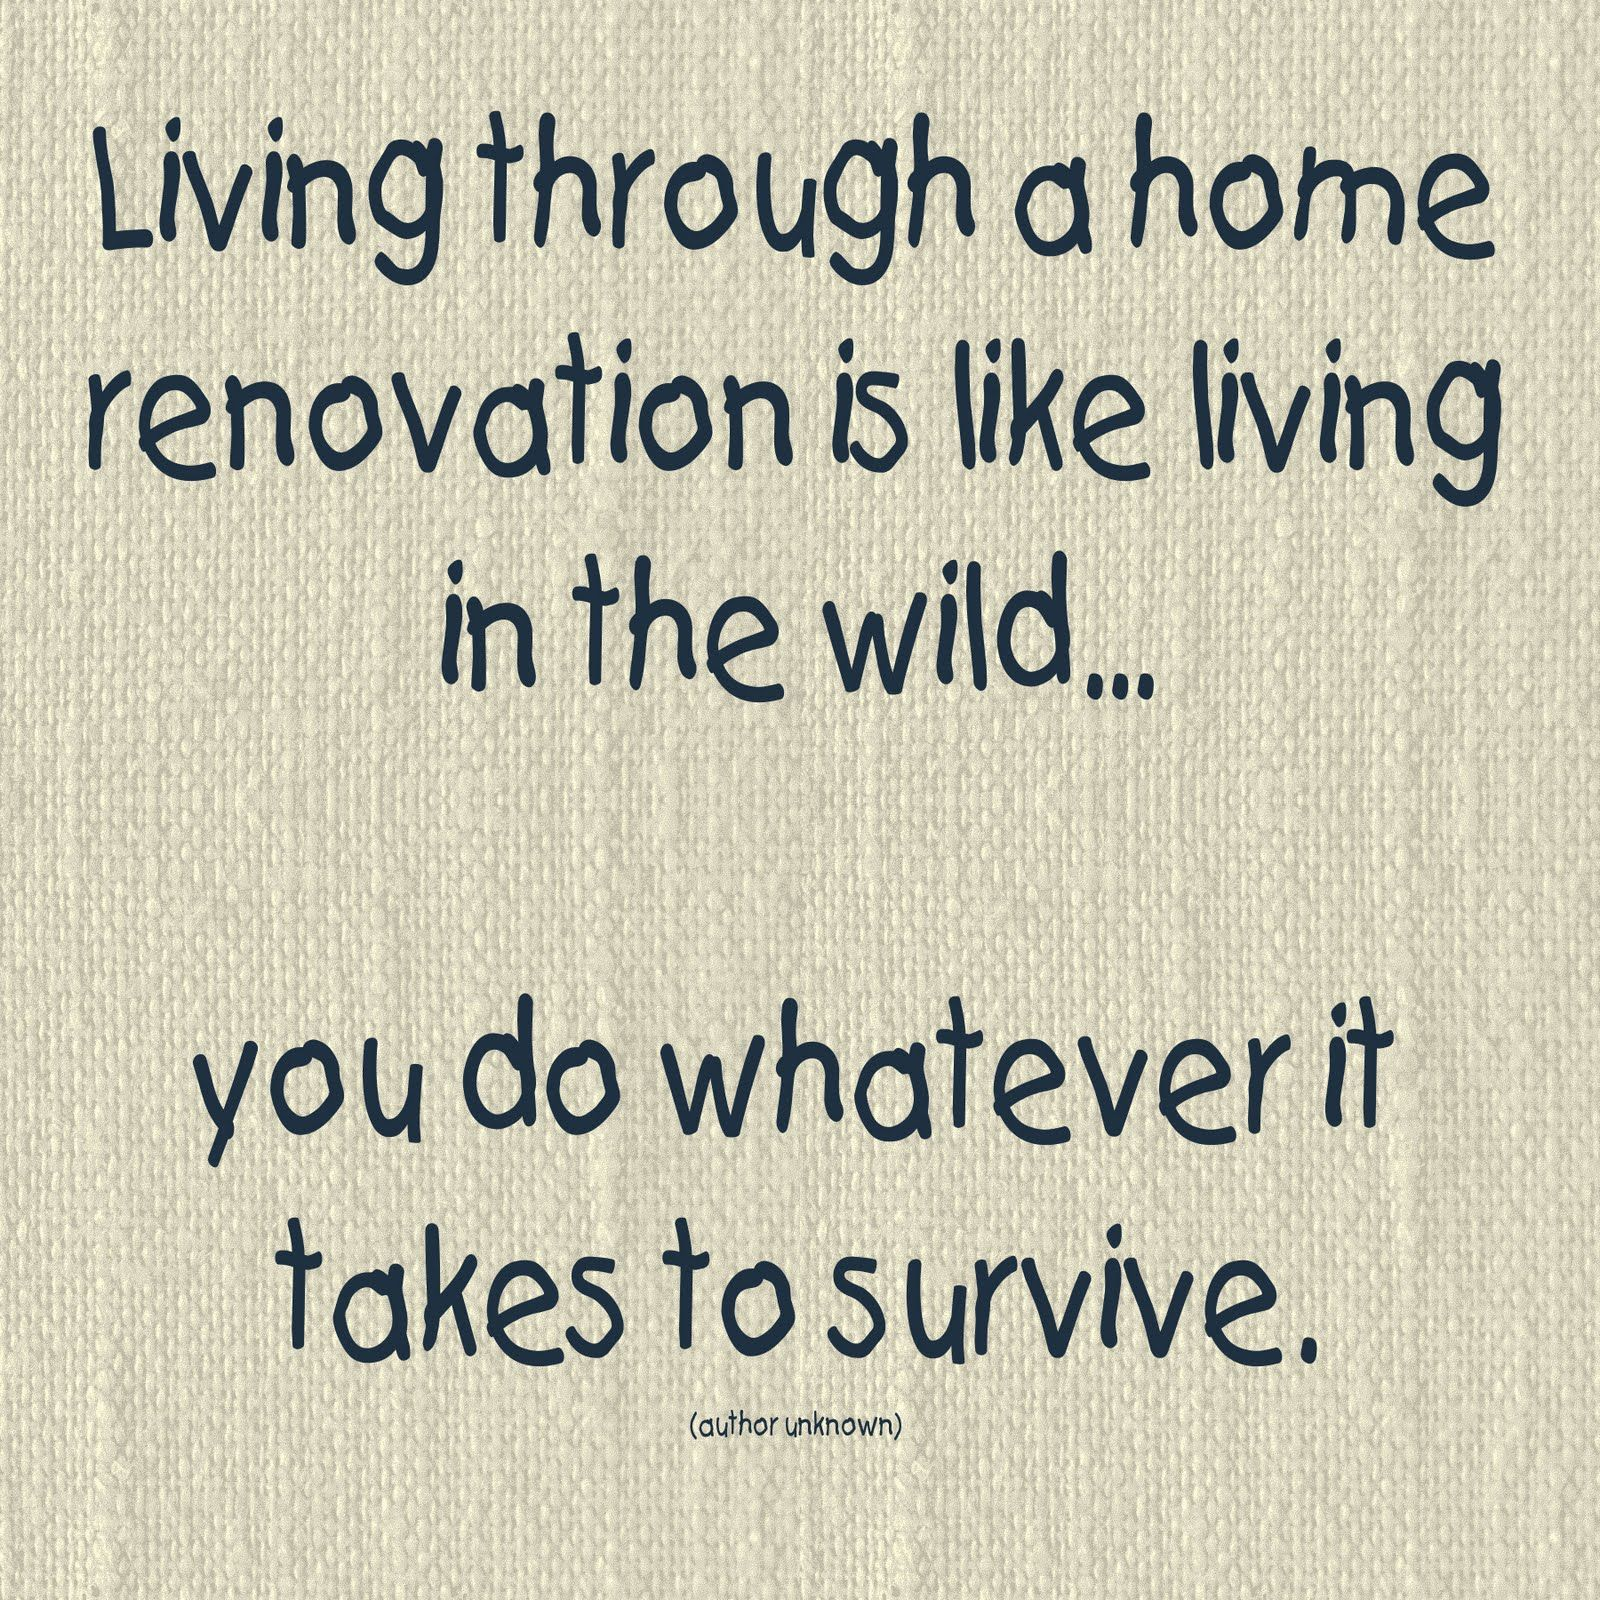 Funny Quotes Home Renovation. QuotesGram | Home quotes ... on funny quotes about relationships, funny sayings calendar, poems about home, cute sayings for new home, funny sayings of the day, funny memes about home, sweet sayings about home, funny sayings people, sayings about your home, proverbs about home, christmas sayings about home, wise sayings about home, funny sayings family, love quotes about home, funny sayings history, funny quotes about the day, inspirational sayings about home, funny sayings and phrases, funny signs about home, irish sayings about home,